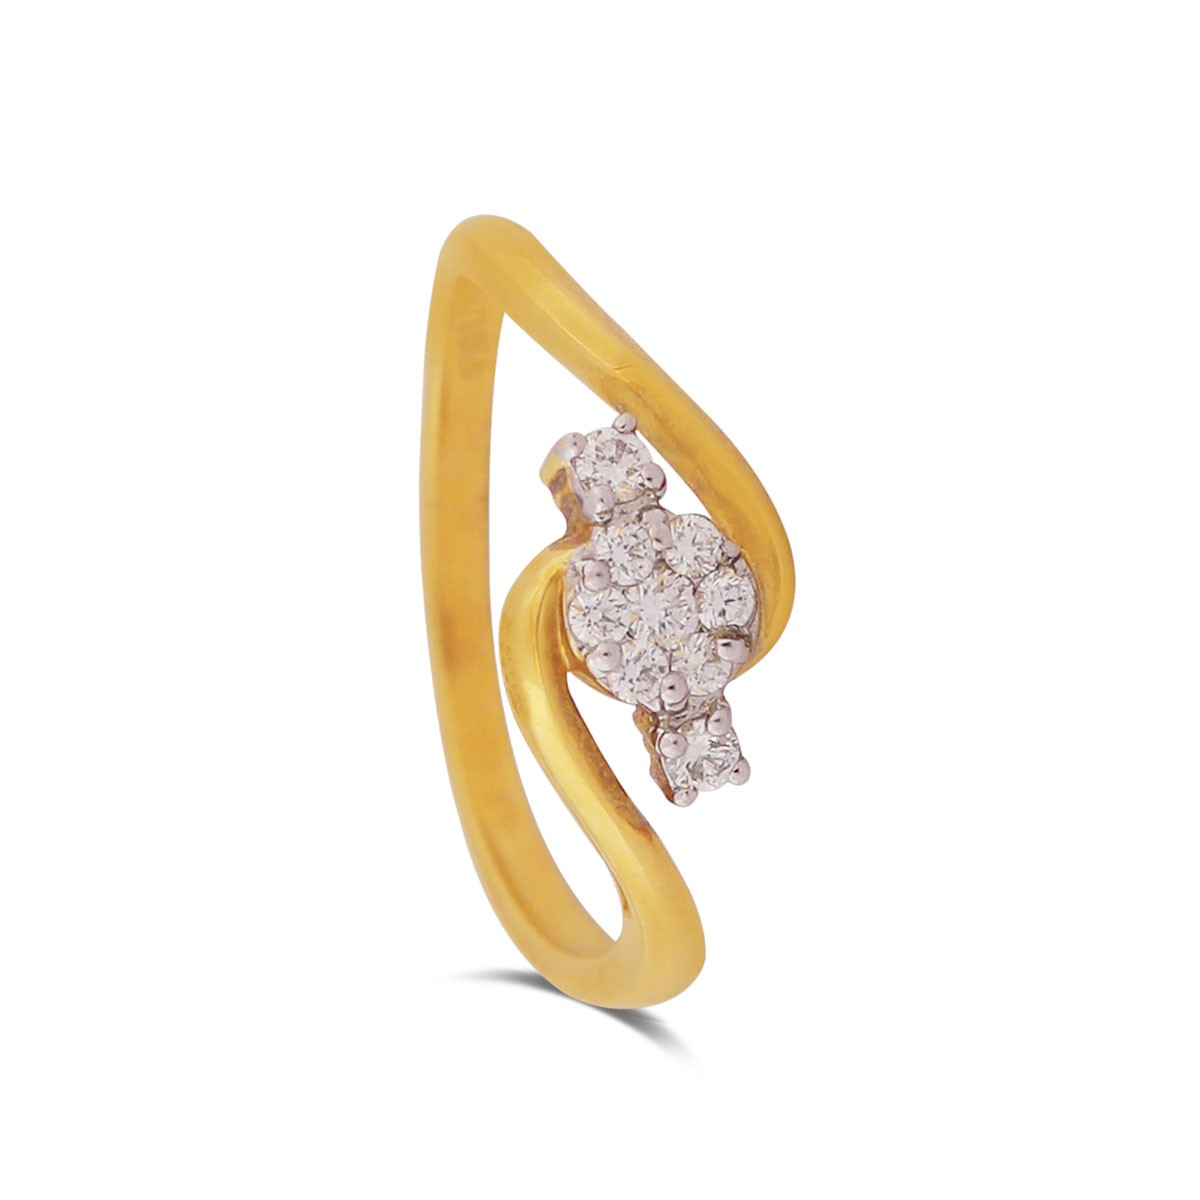 Tilia Yellow Gold Diamond Ring